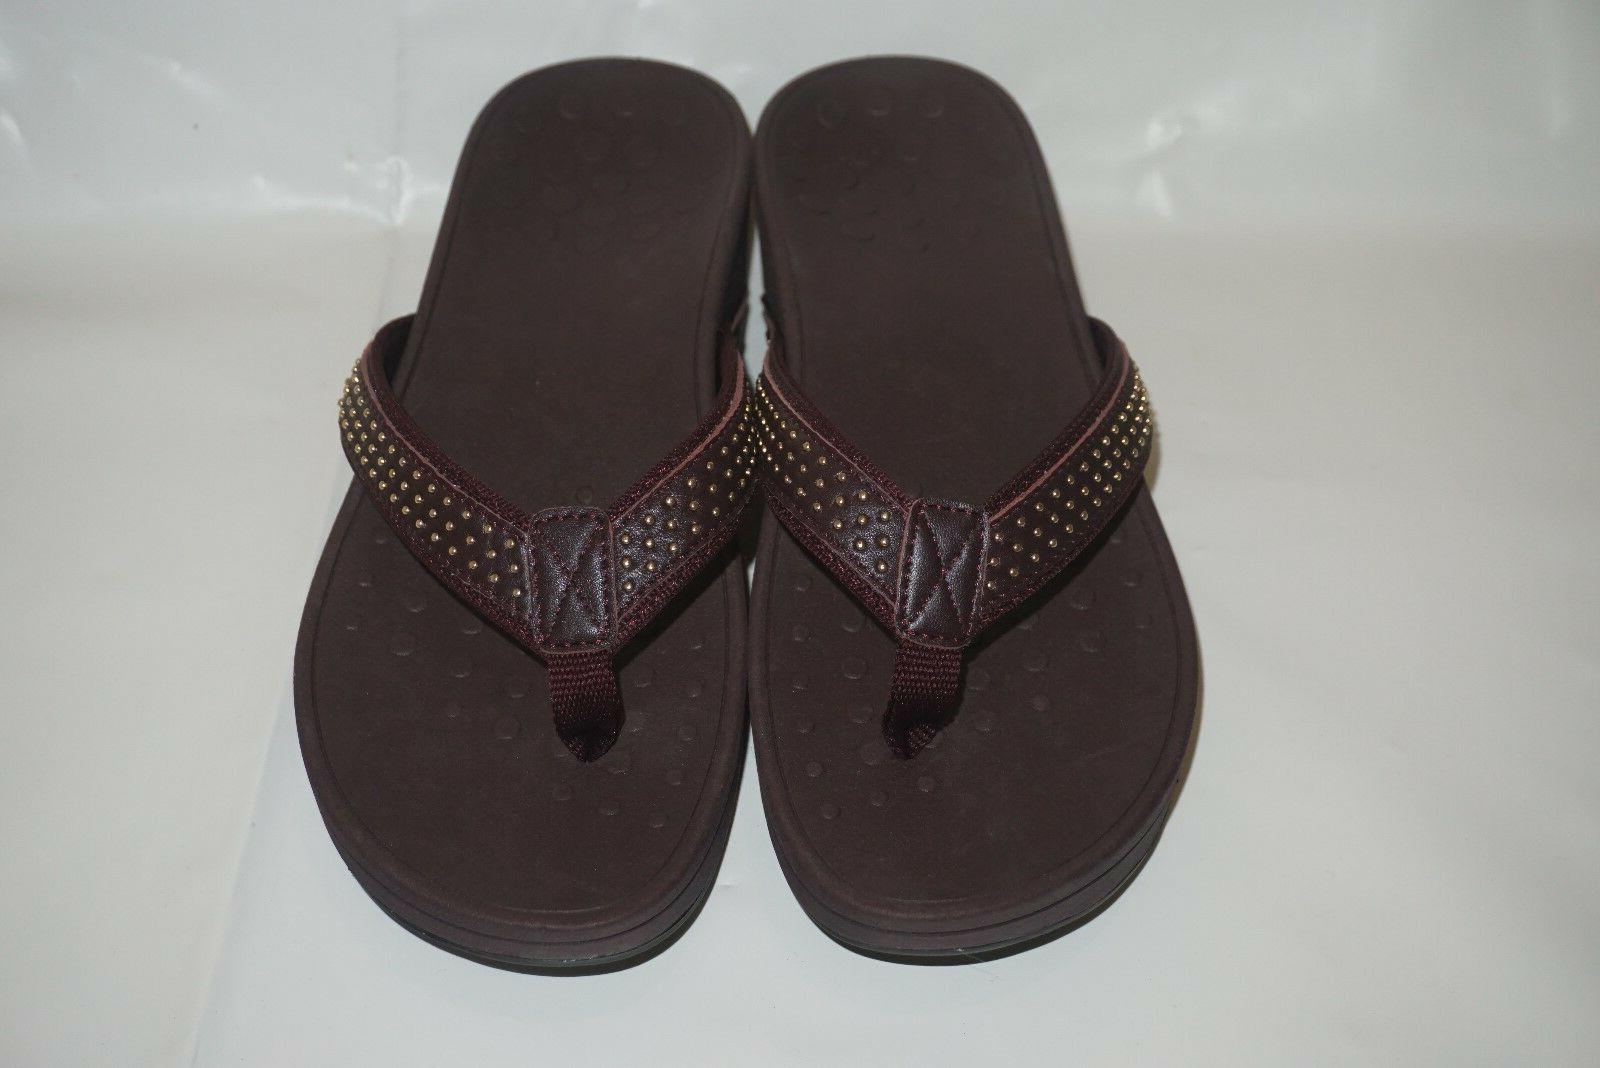 Women's VIONIC Pacific Kehoe Toe Thong Wedge Sandal - Size U